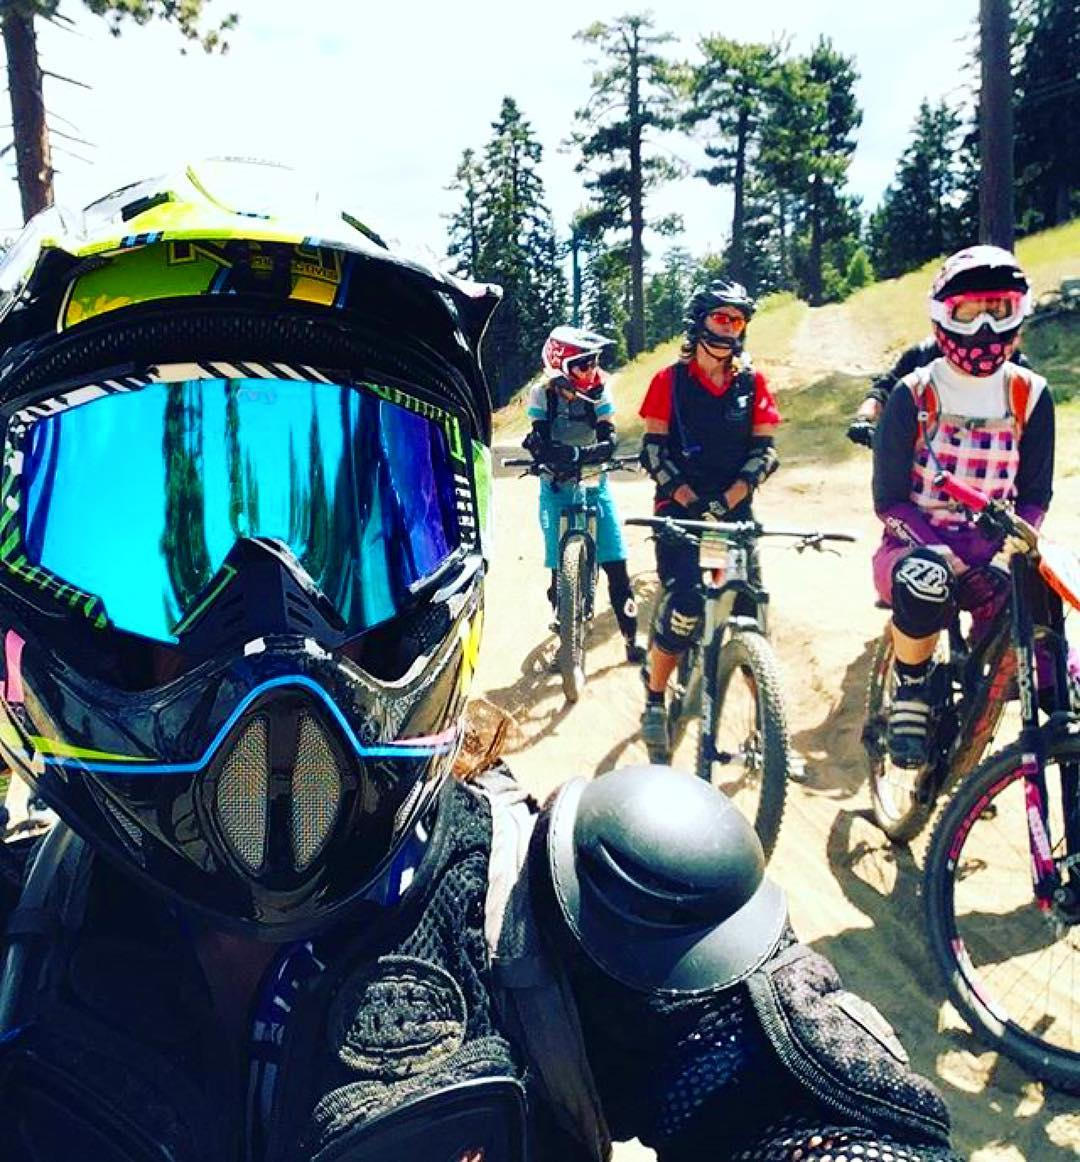 #Repost @girlz_gone_riding ・・・ Waiting to drop into Turtle with the girlz.  A new favorite trail of mine. All berms & super flowey!  #GGR #girlzgoneriding #ladyshred #zoicclothing #kaliprotectives #ridepetalpower #snowsummit #morewomenonbikes